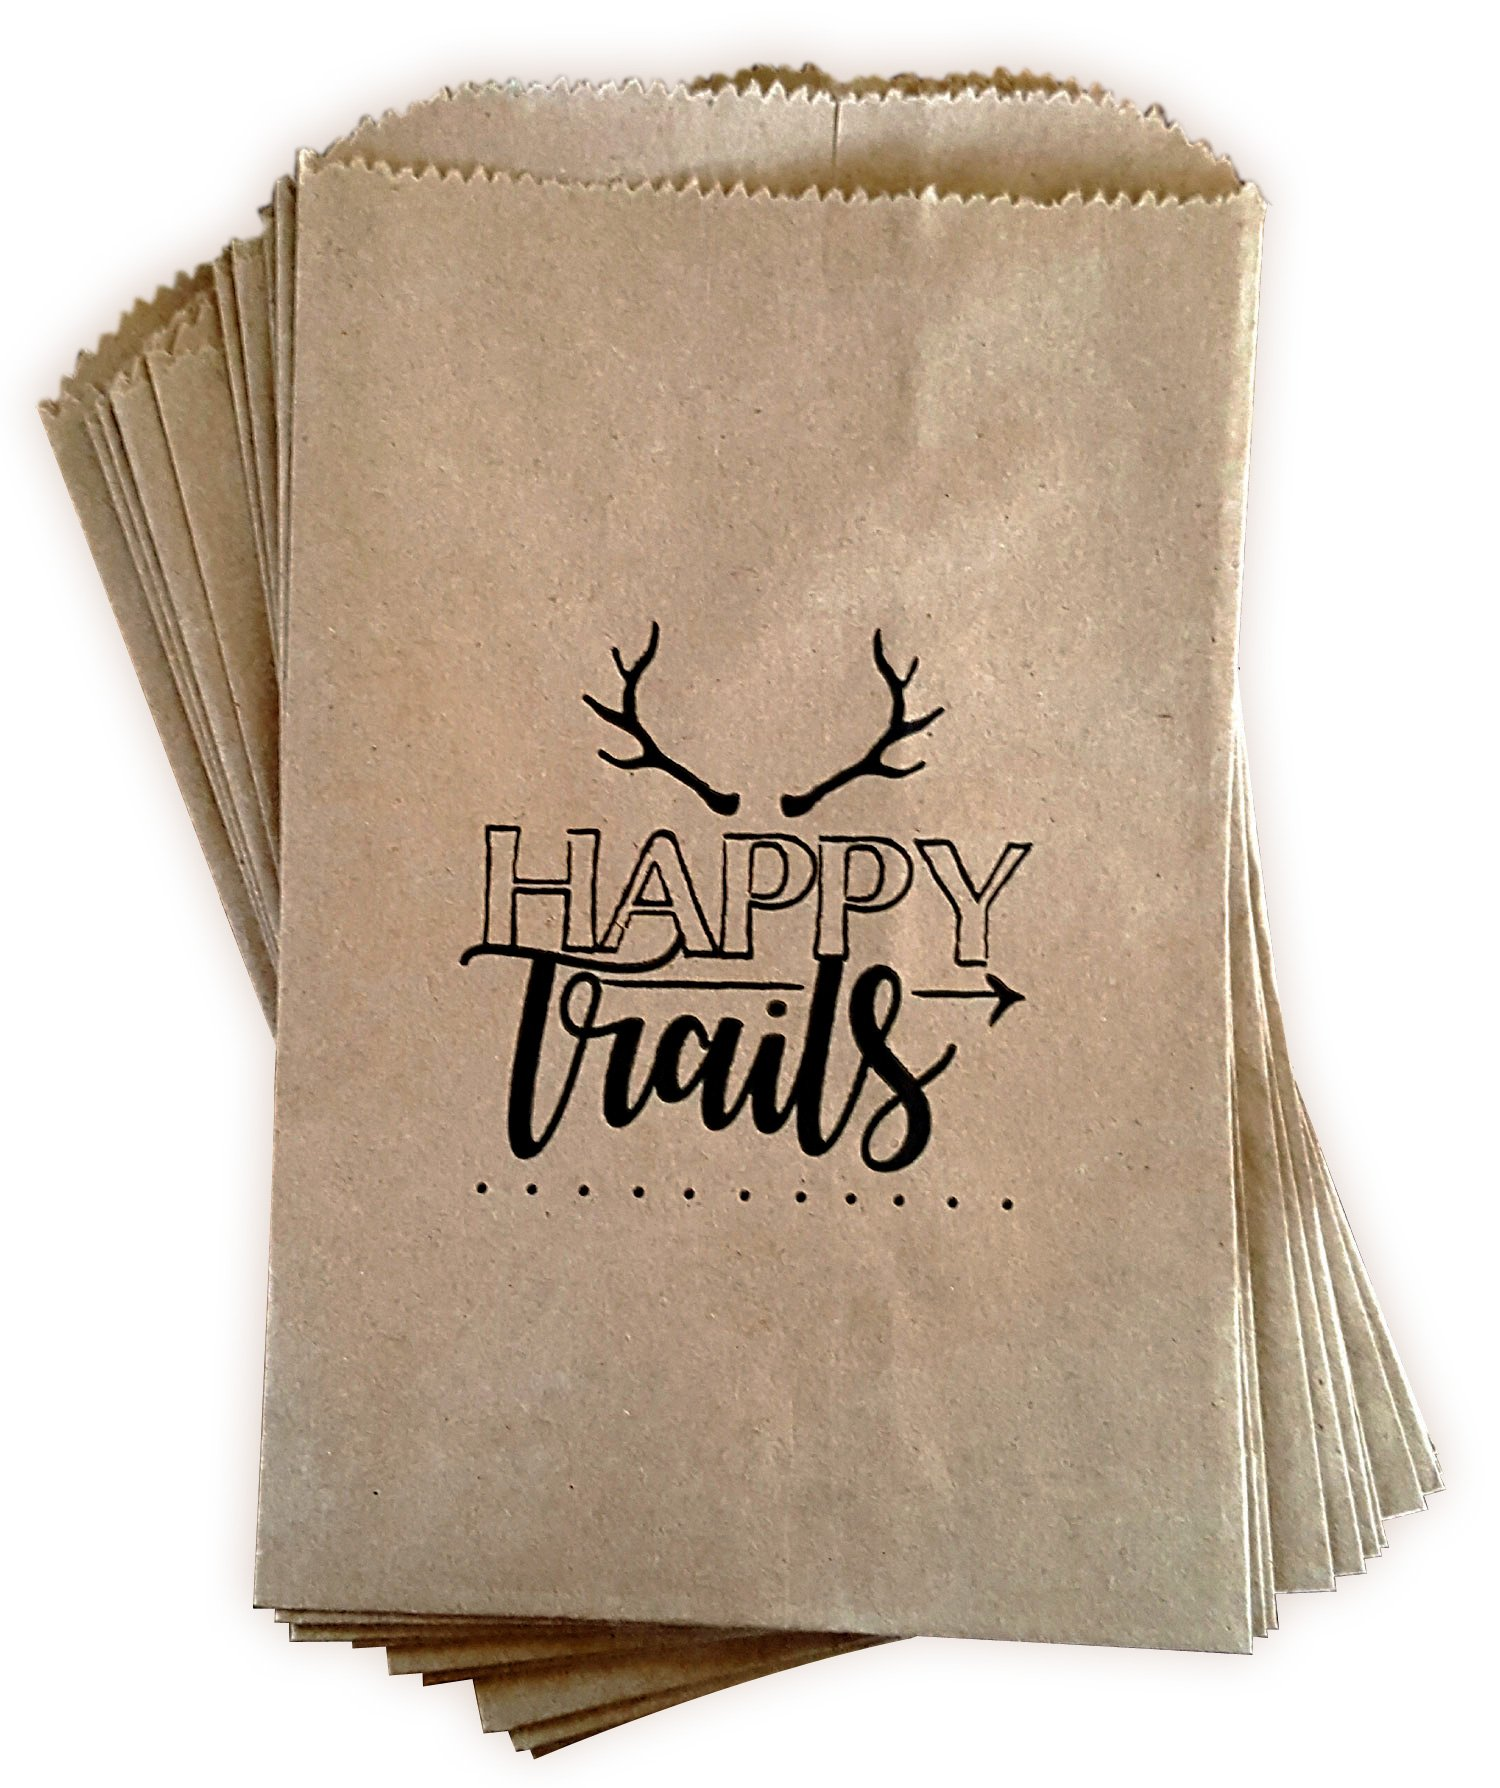 Kraft paper rustic treat bags, trail mix favor bags, candy buffet bags, gift bags made out of 100% recycled paper, antler, woodland design 24 ct''Happy Trails'' favor bags